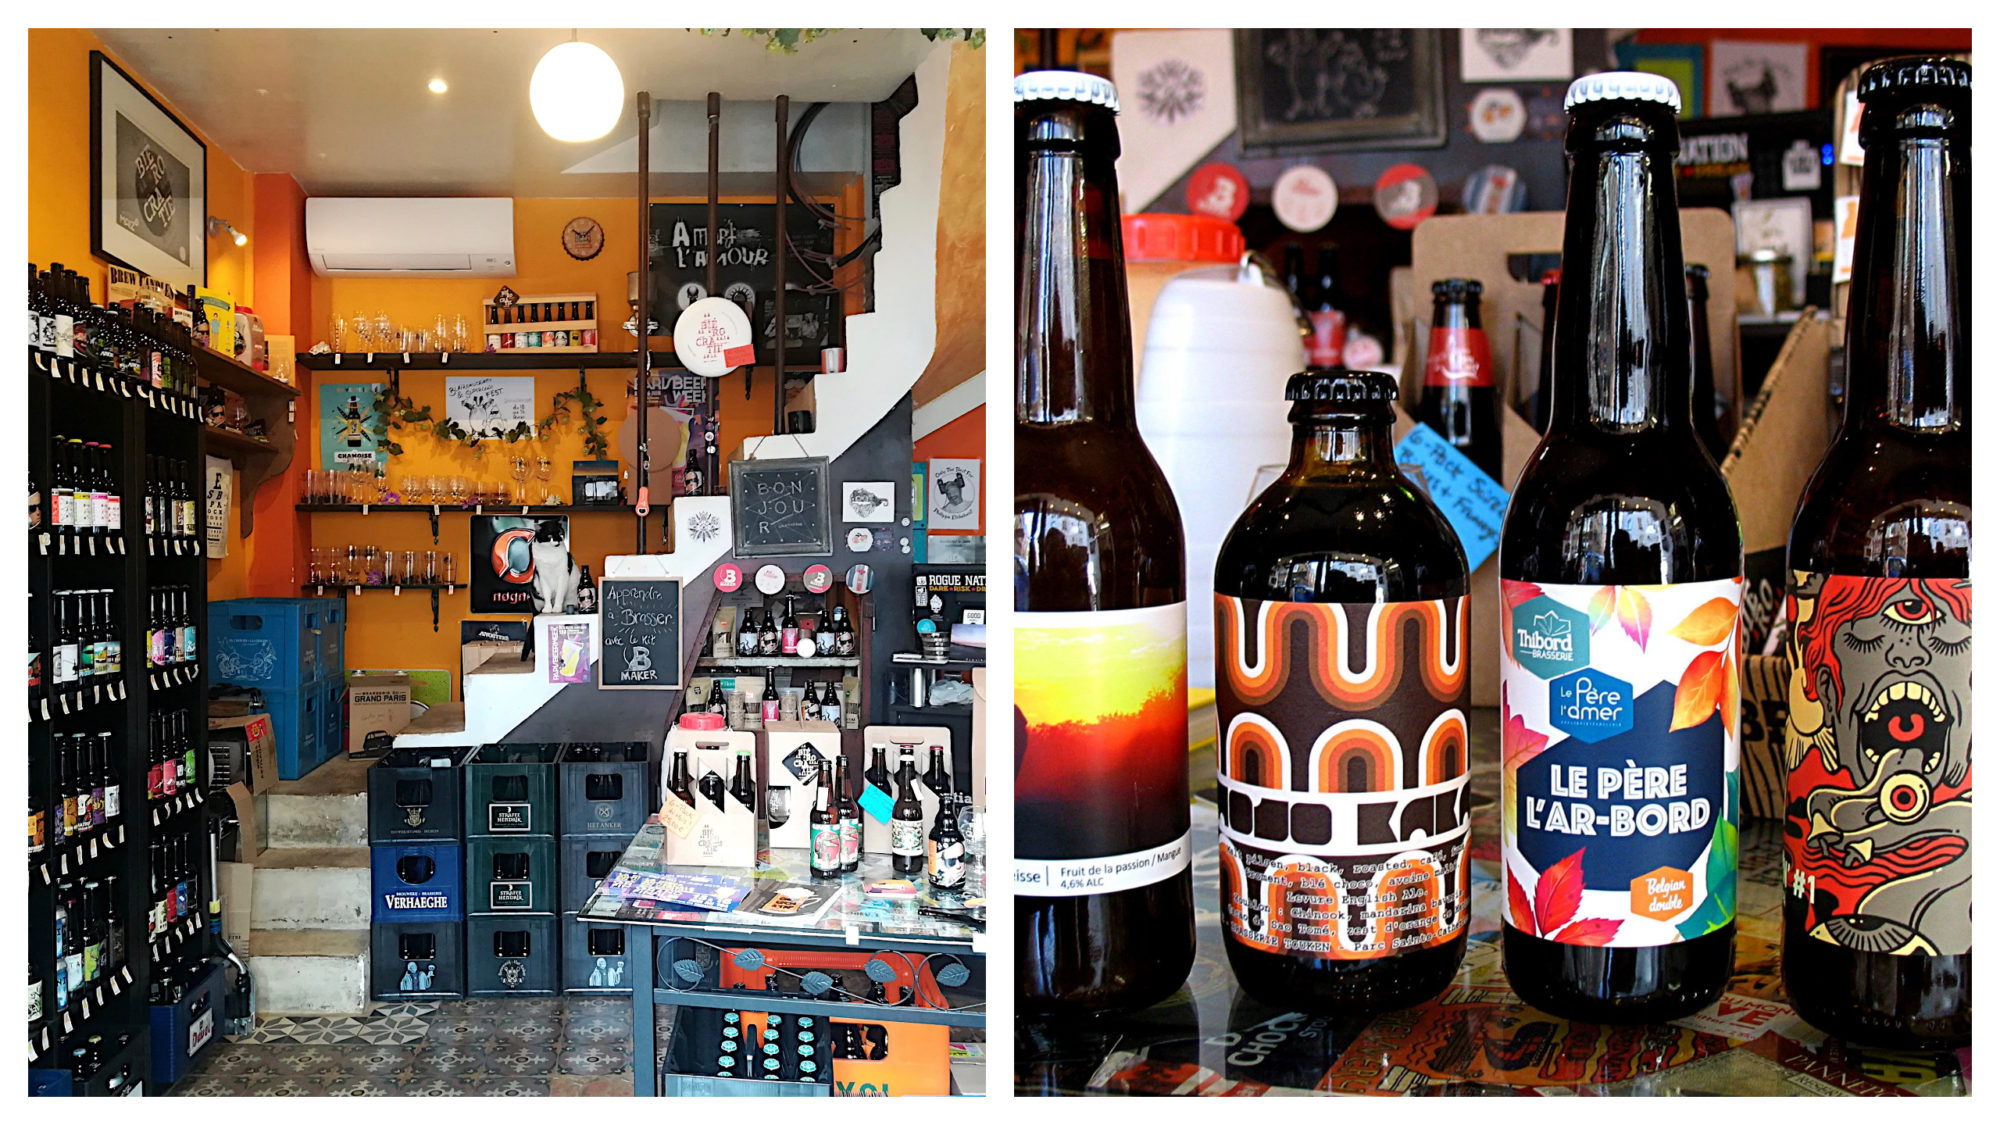 Inside craft beer shop in Paris Biérocratie (left) and a selection of four craft beer bottles (right).